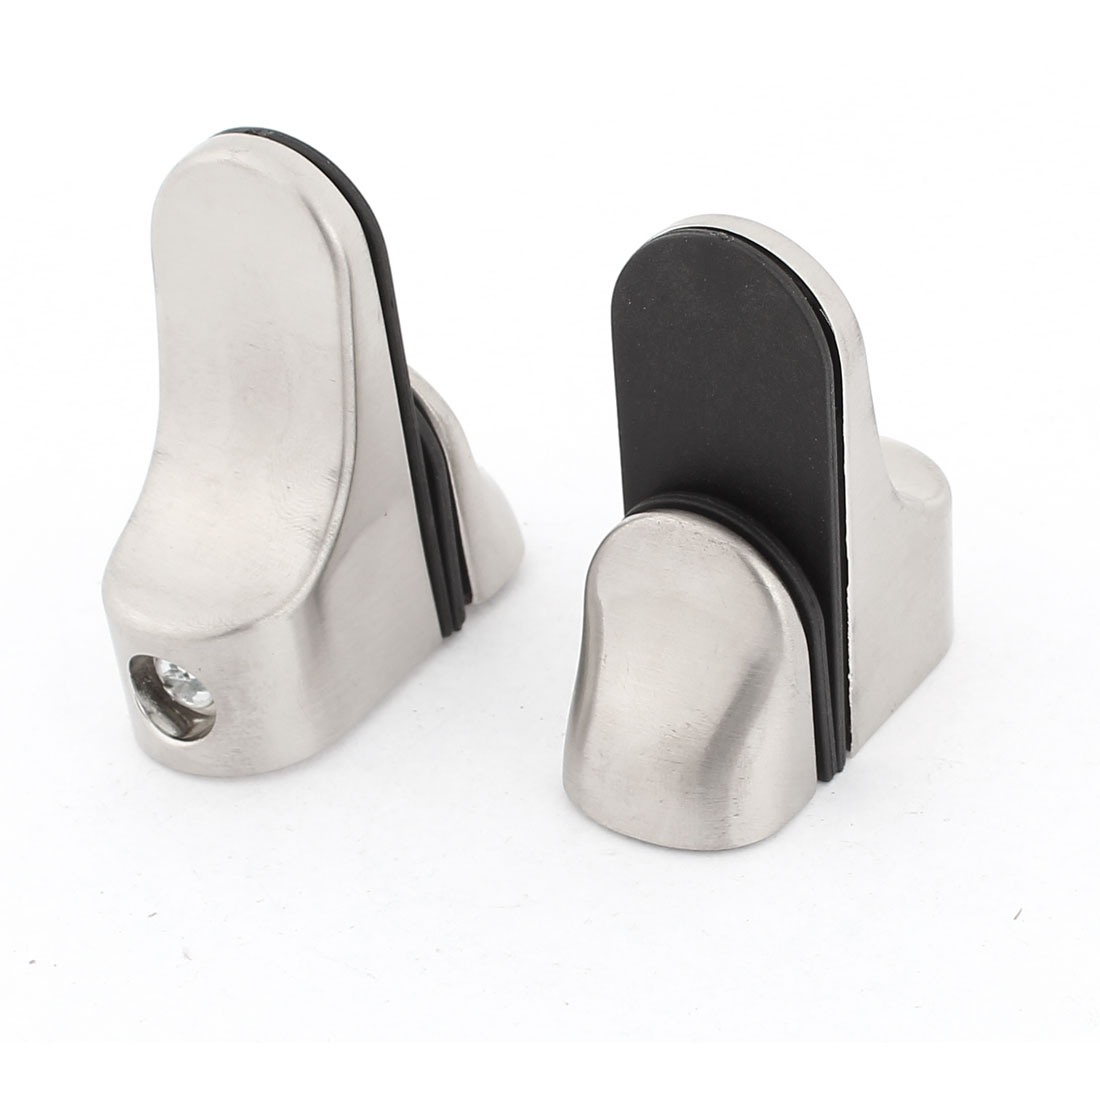 18mm Thickness Glass Window Shelf Clip Clamp Support Silver Tone 2 Pcs